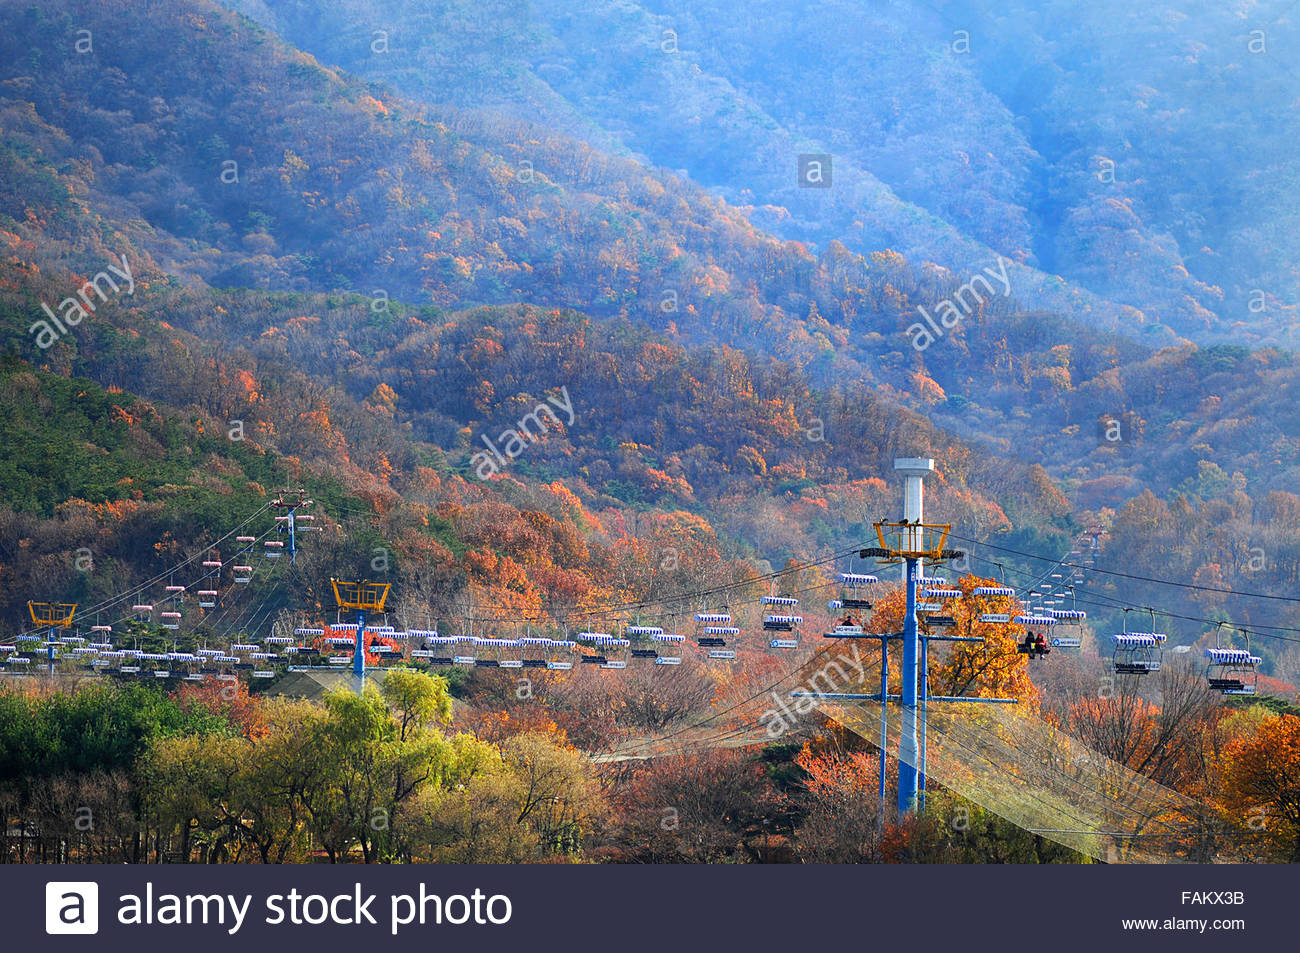 the chairlift of Seoul Grand Park, Gwacheon-si, Gyeonggi-do, South Korea - Stock Image